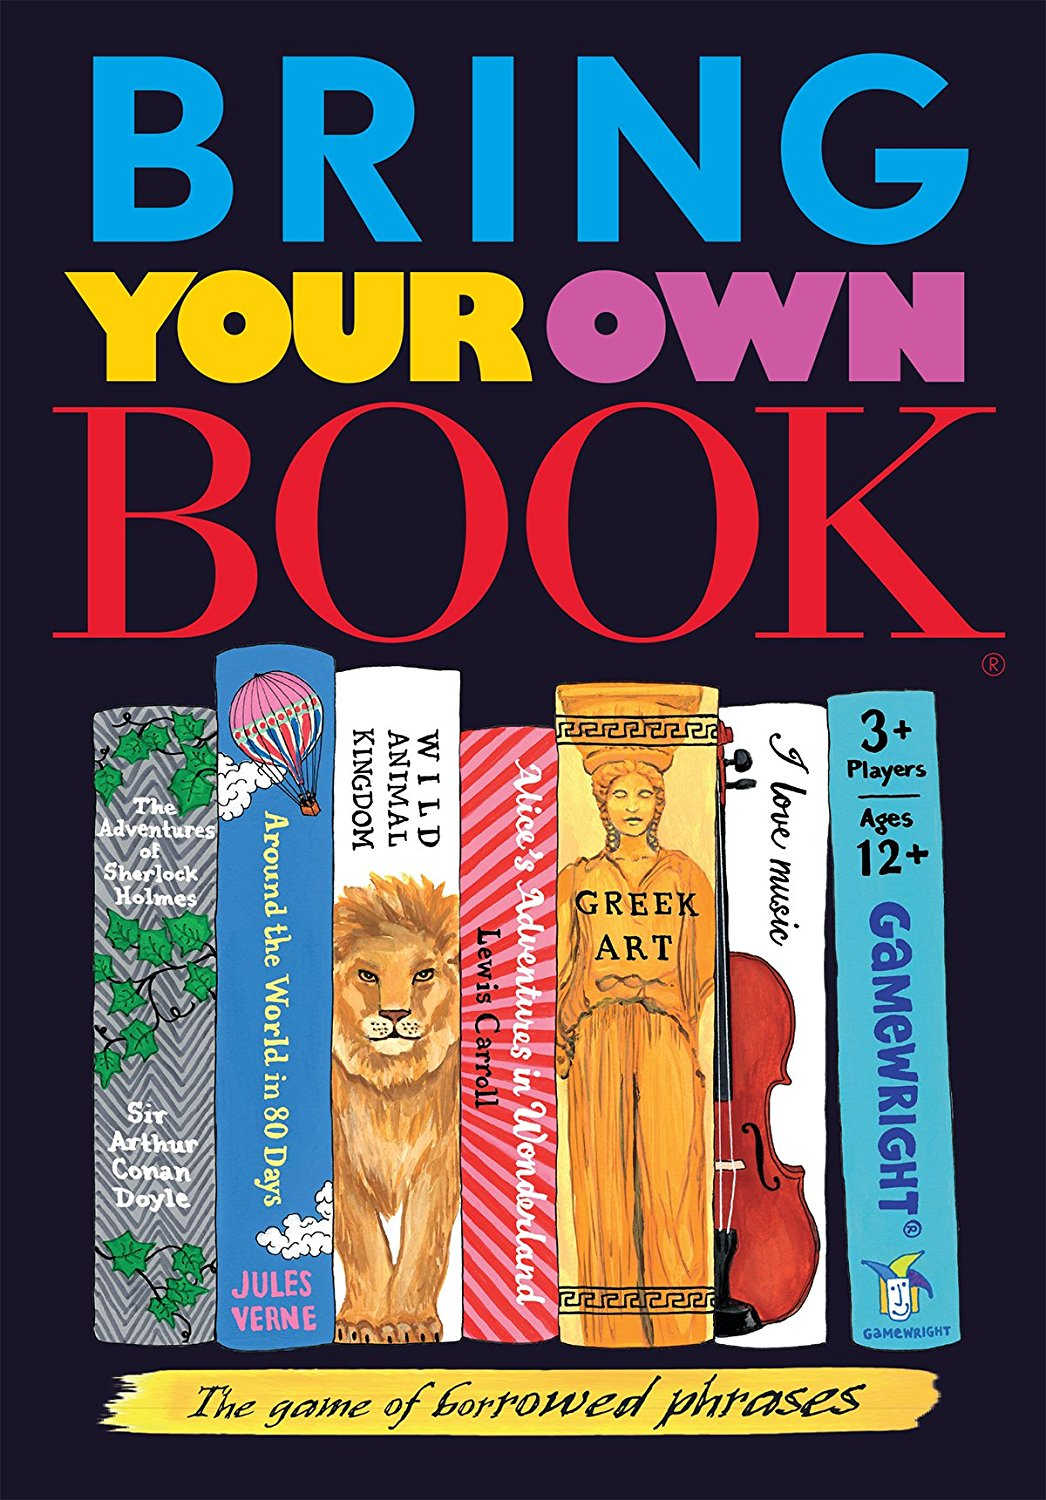 Picayune Pen | Gifts for Bookworms | Bring Your Own Book game